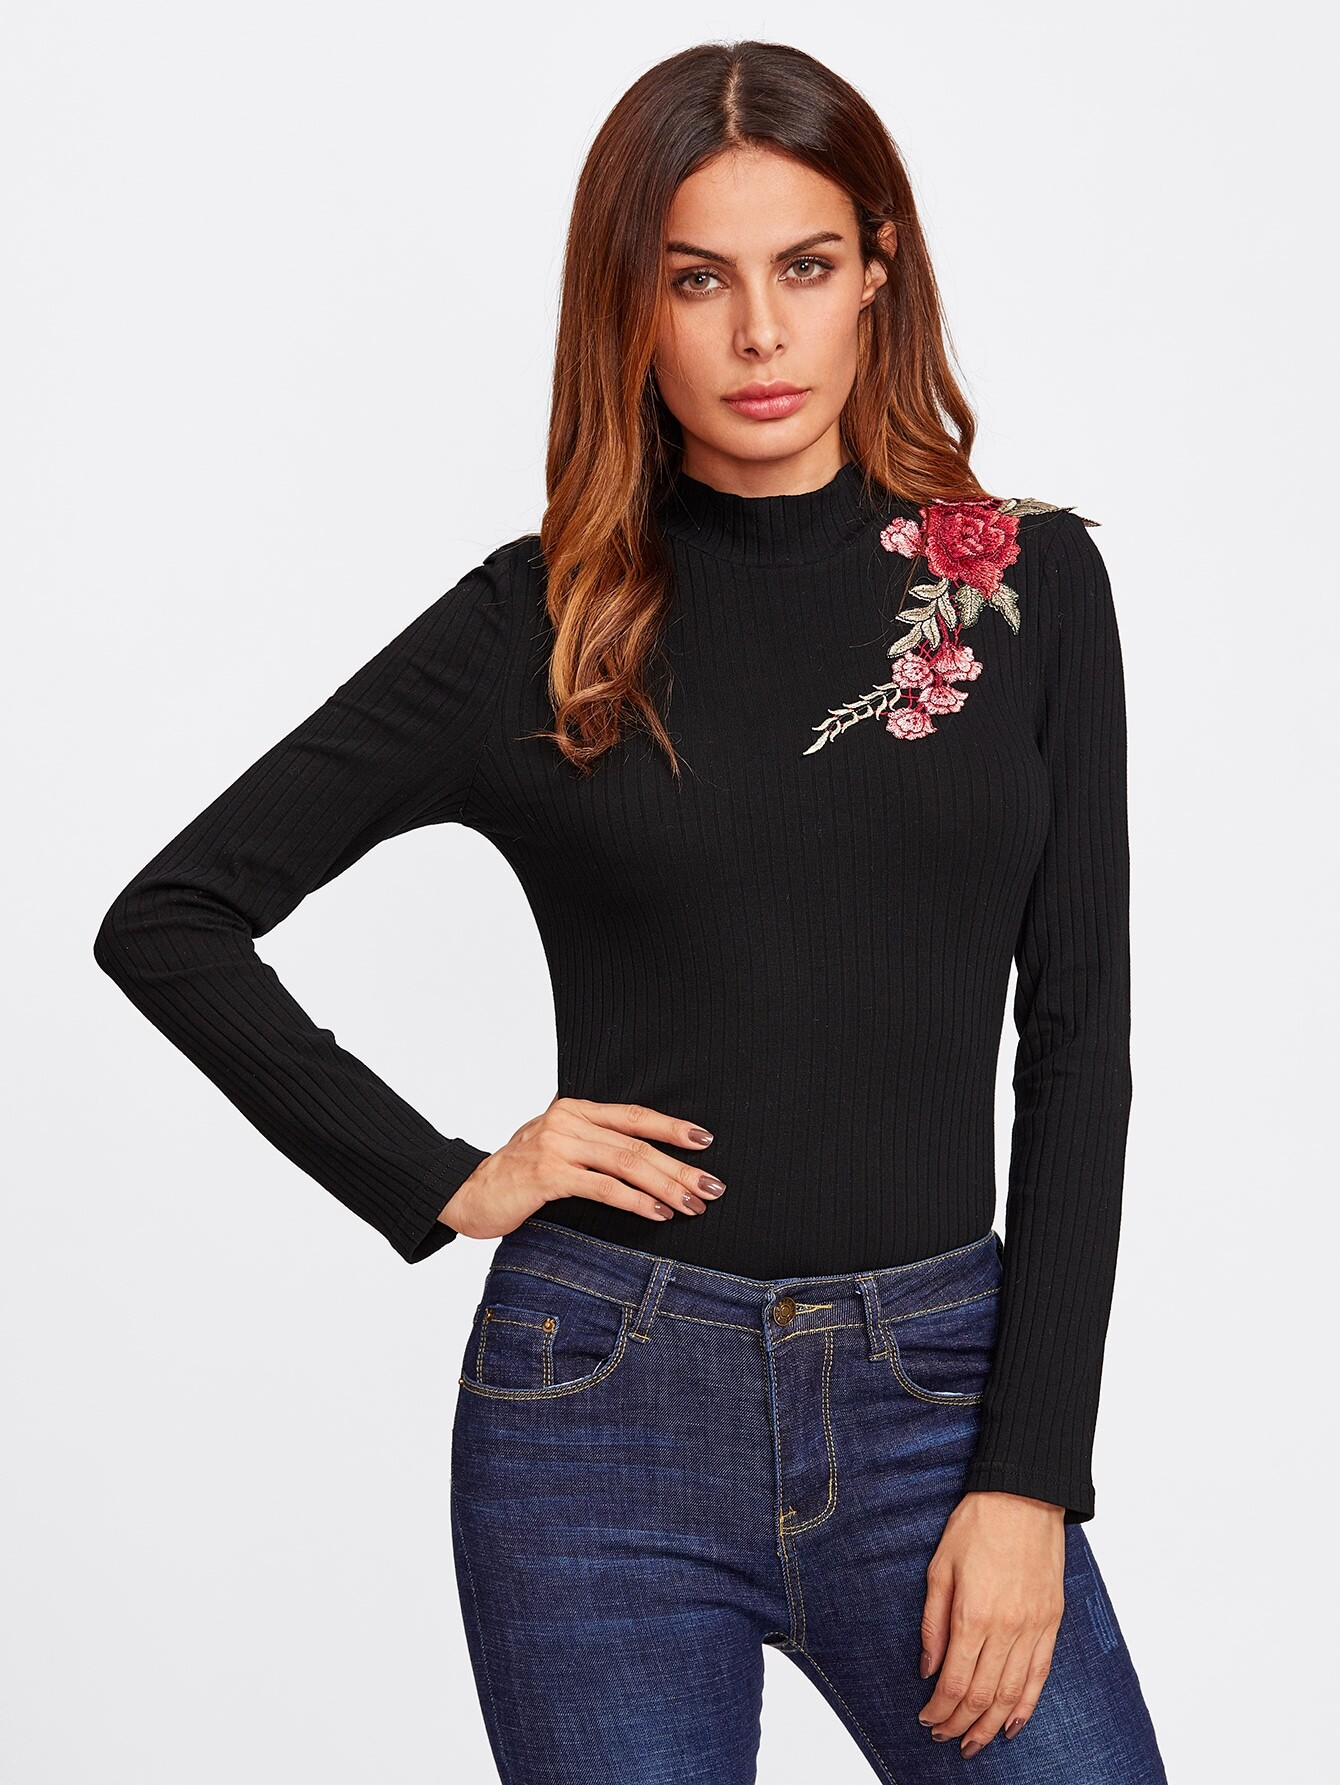 Embroidered Patch Ribbed Knit Tee tee170904705